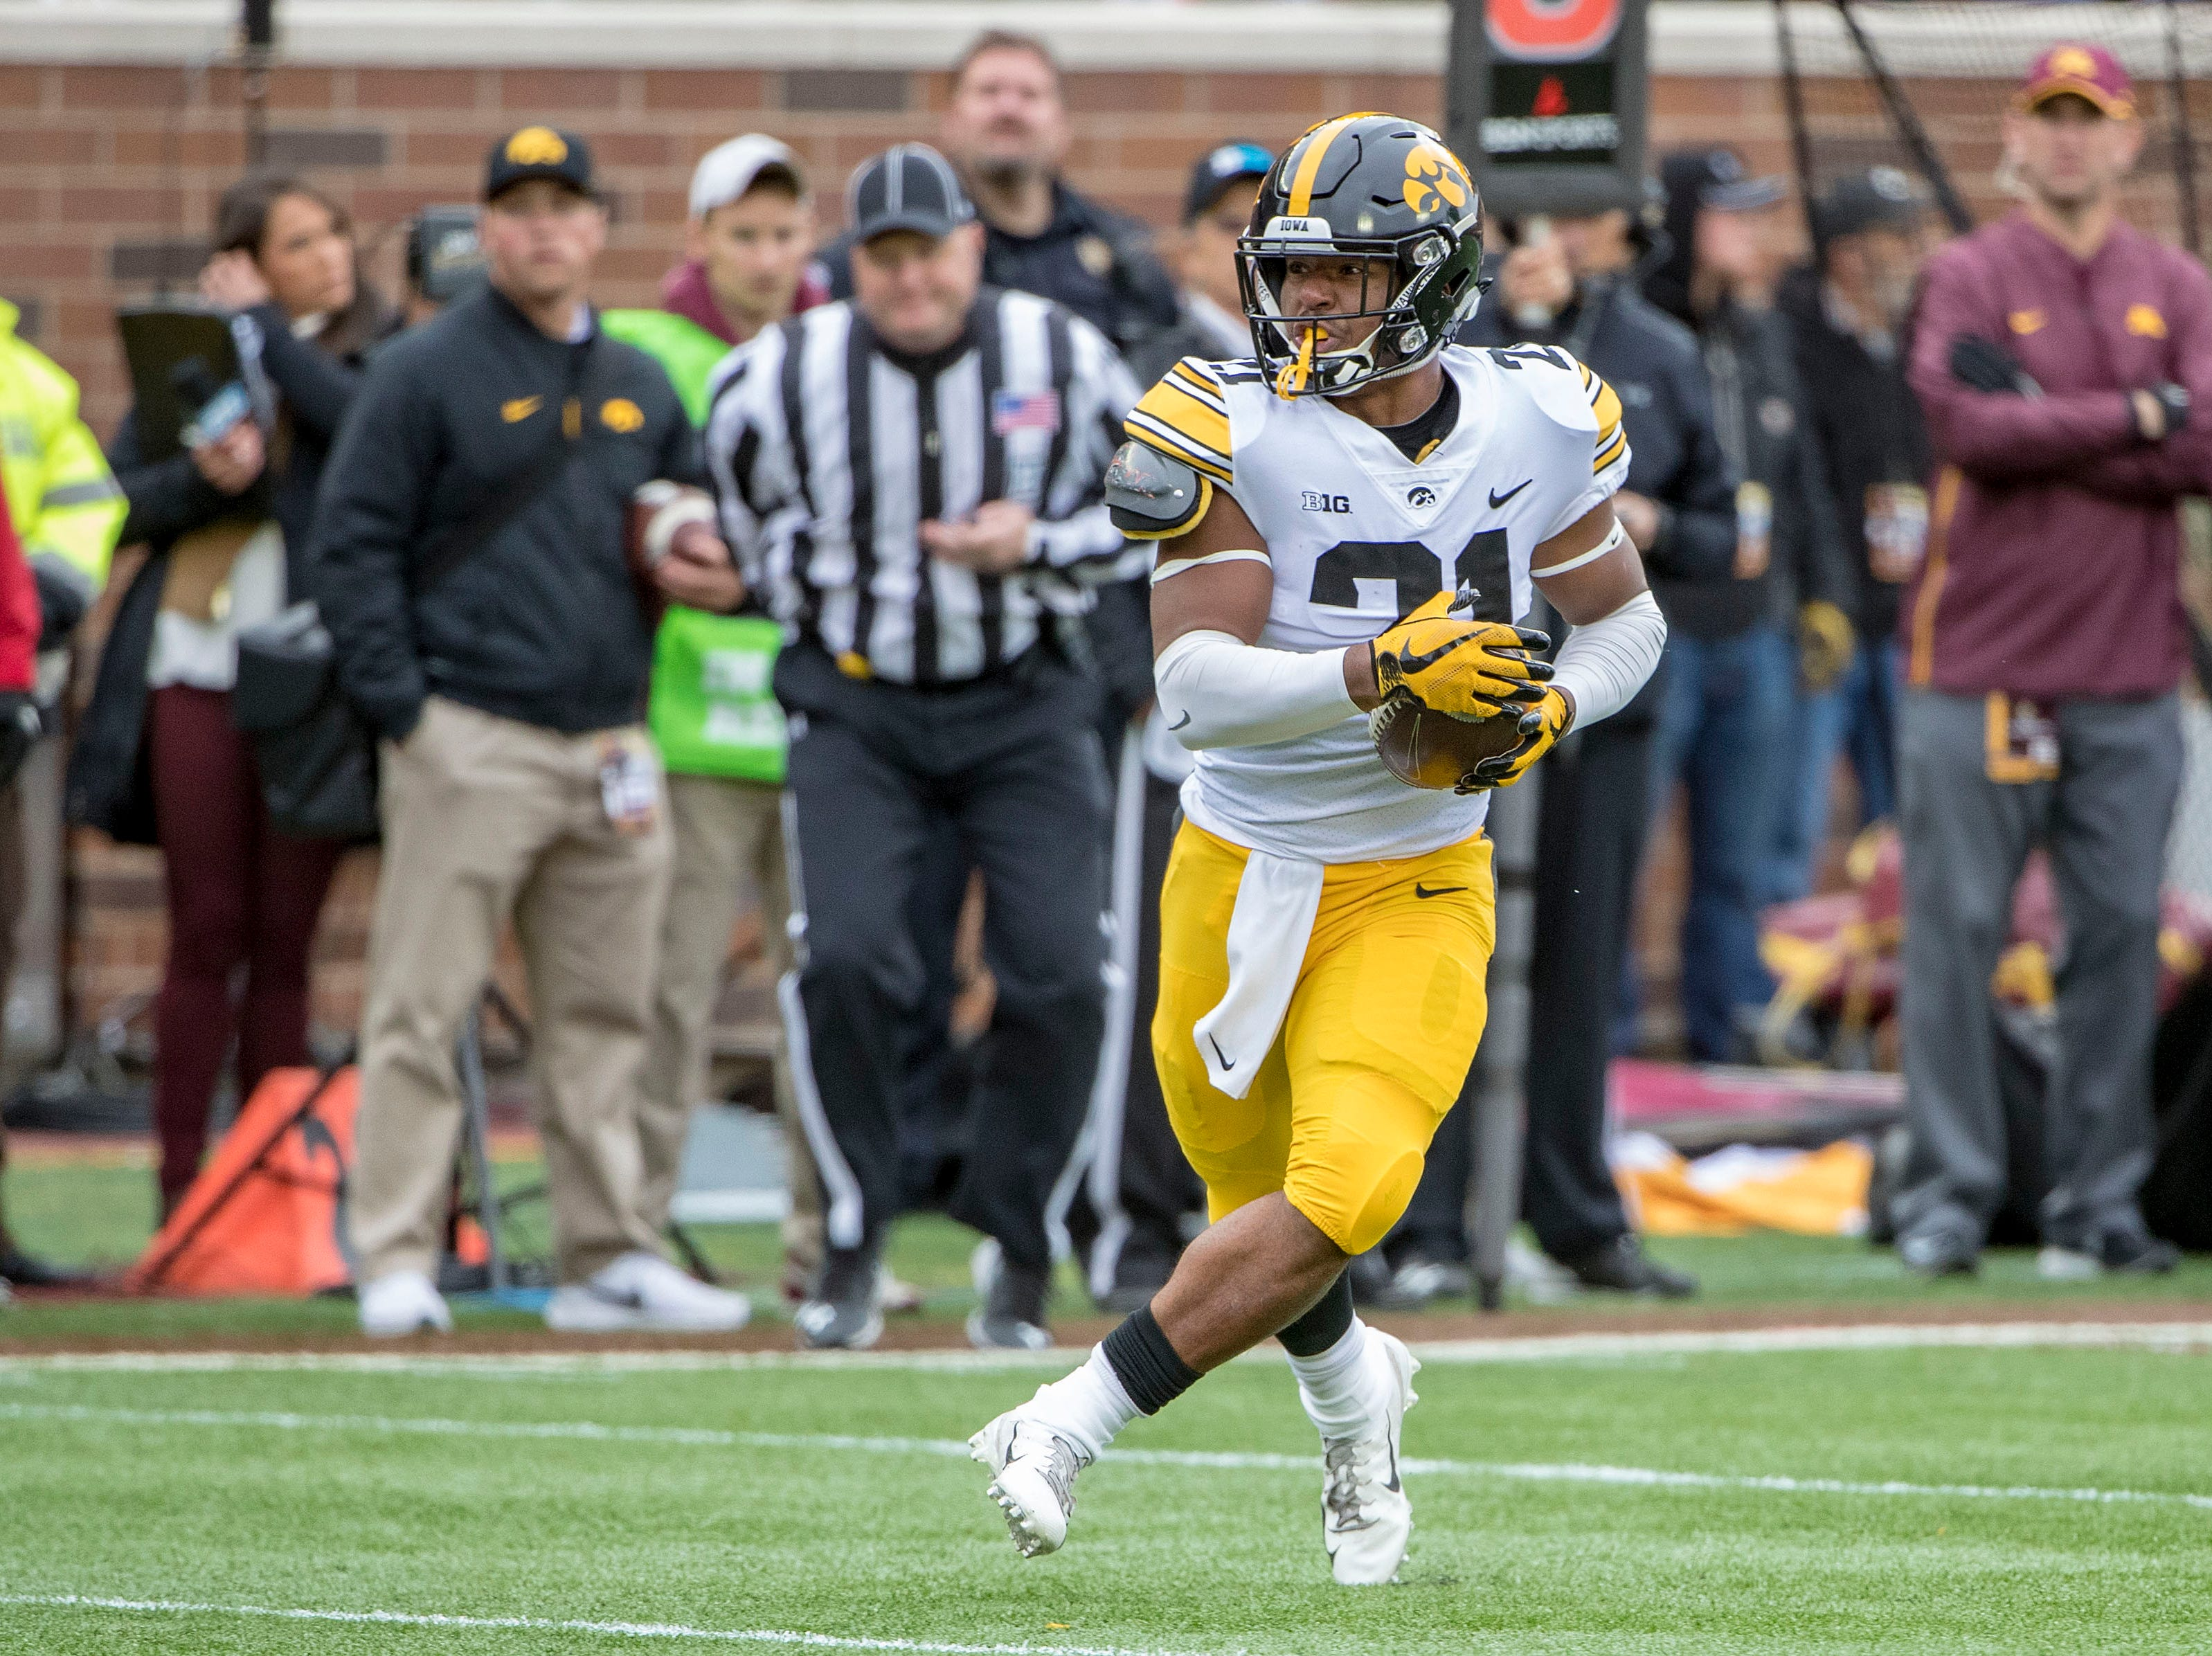 Oct 6, 2018; Minneapolis, MN, USA; Iowa Hawkeyes running back Ivory Kelly-Martin (21) runs the ball against the Minnesota Golden Gophers in the first half at TCF Bank Stadium. Mandatory Credit: Jesse Johnson-USA TODAY Sports